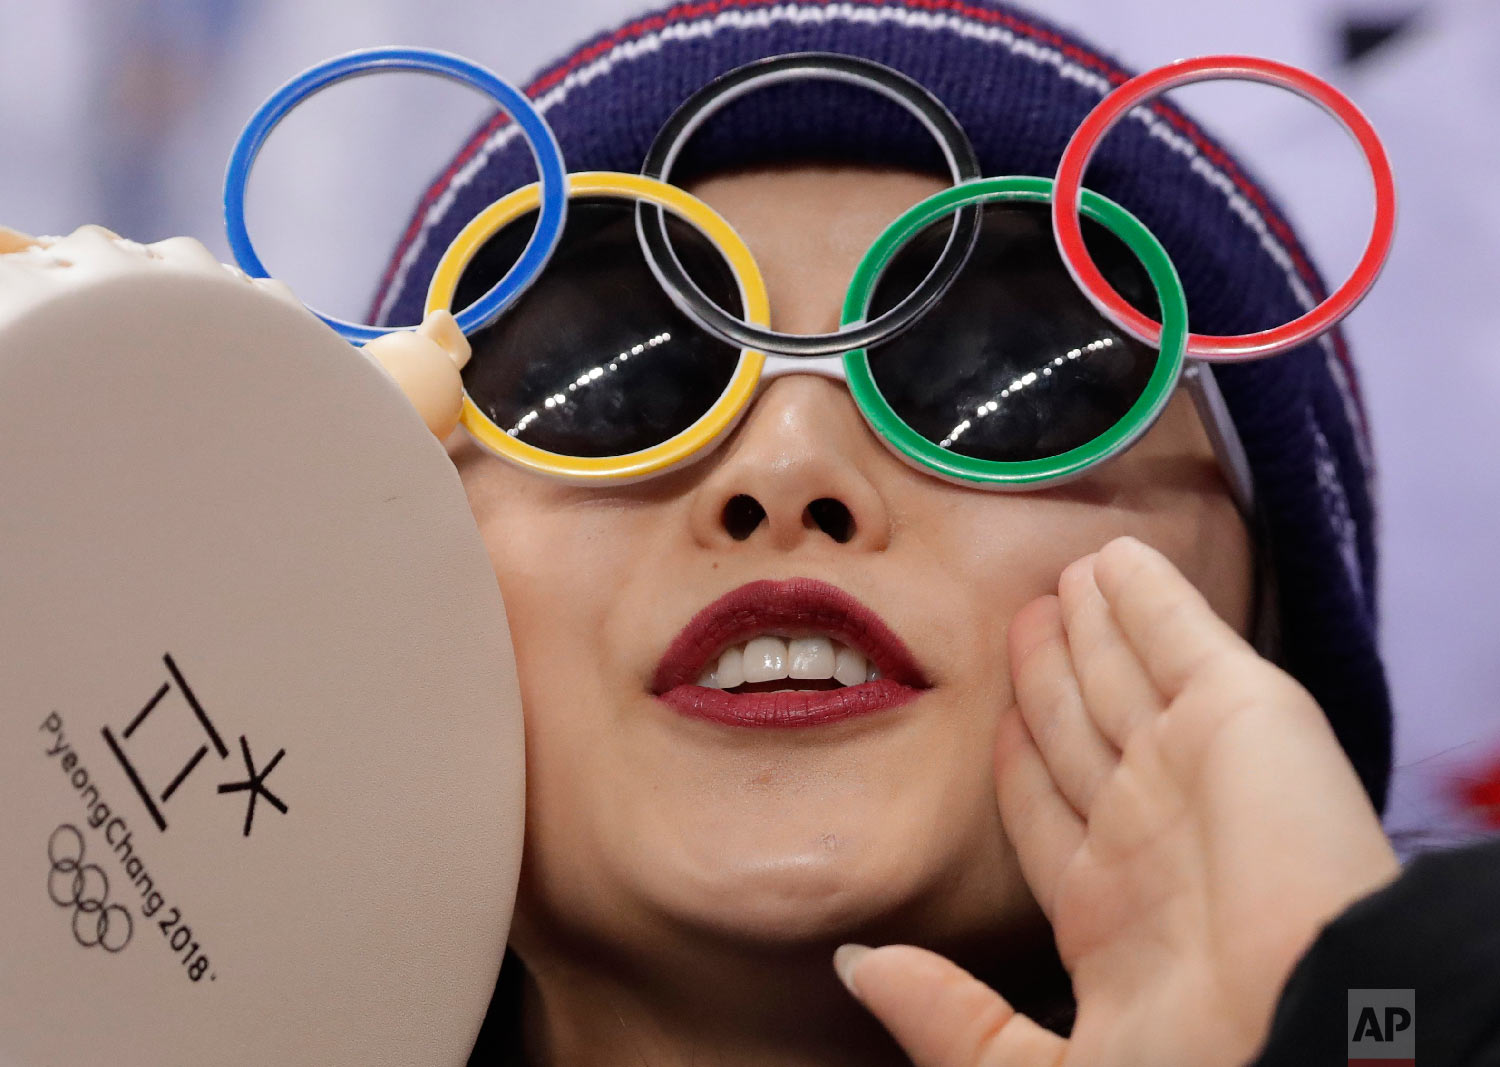 Teammate of Choi Da-bin, of South Korea, cheers her on during in the ladies single figure skating short program in the Gangneung Ice Arena at the 2018 Winter Olympics in Gangneung, South Korea, Sunday, Feb. 11, 2018. (AP Photo/Julie Jacobson)